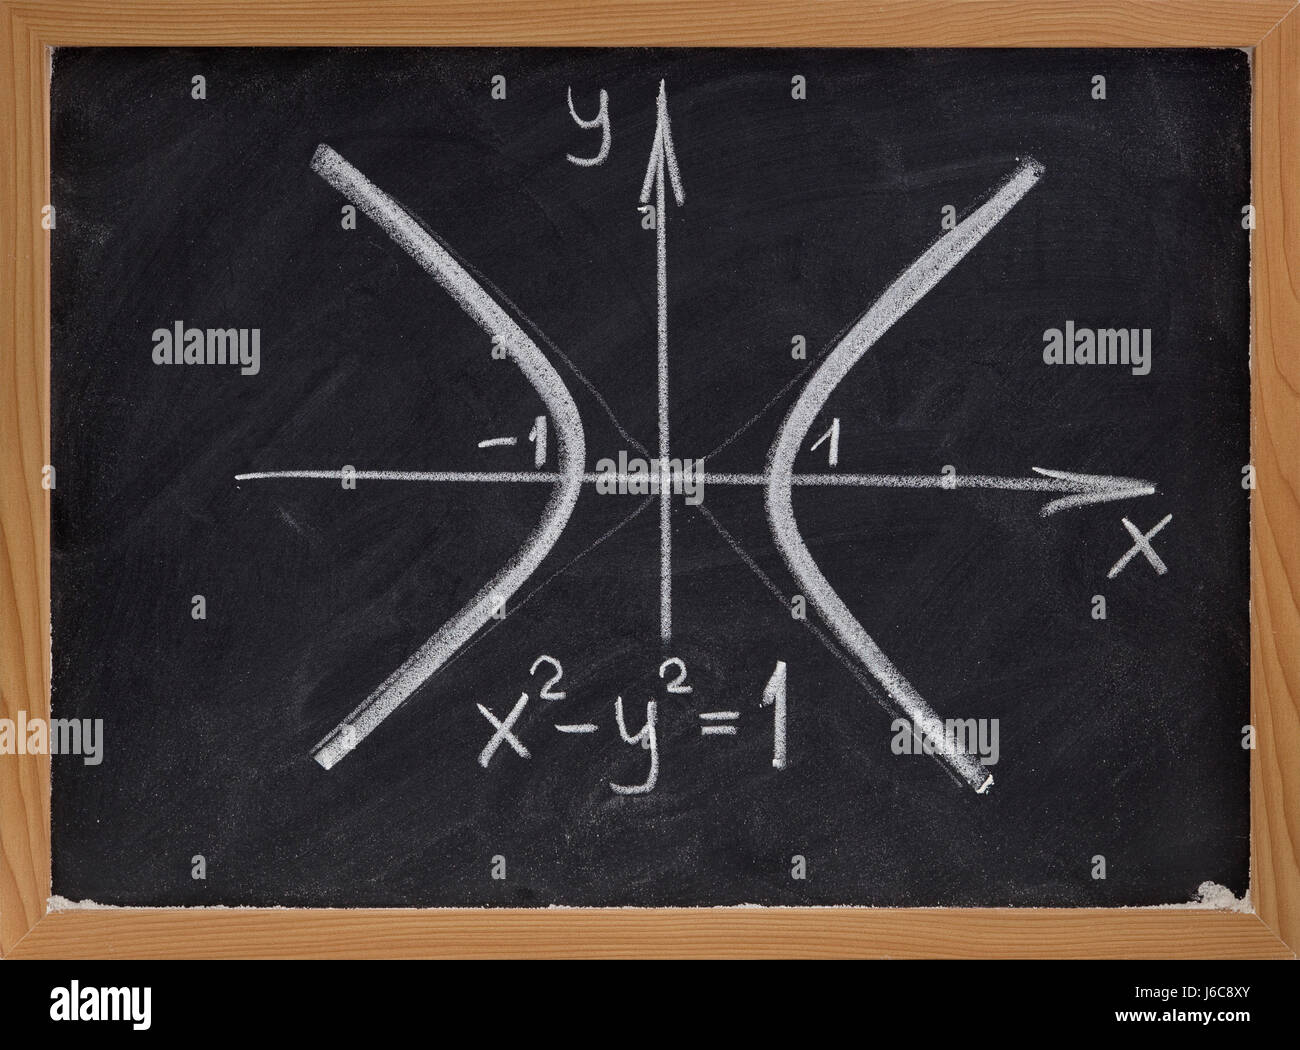 conic sections diagram wiring for 3 gang 1 way light switch hyperbola stock photos and images alamy